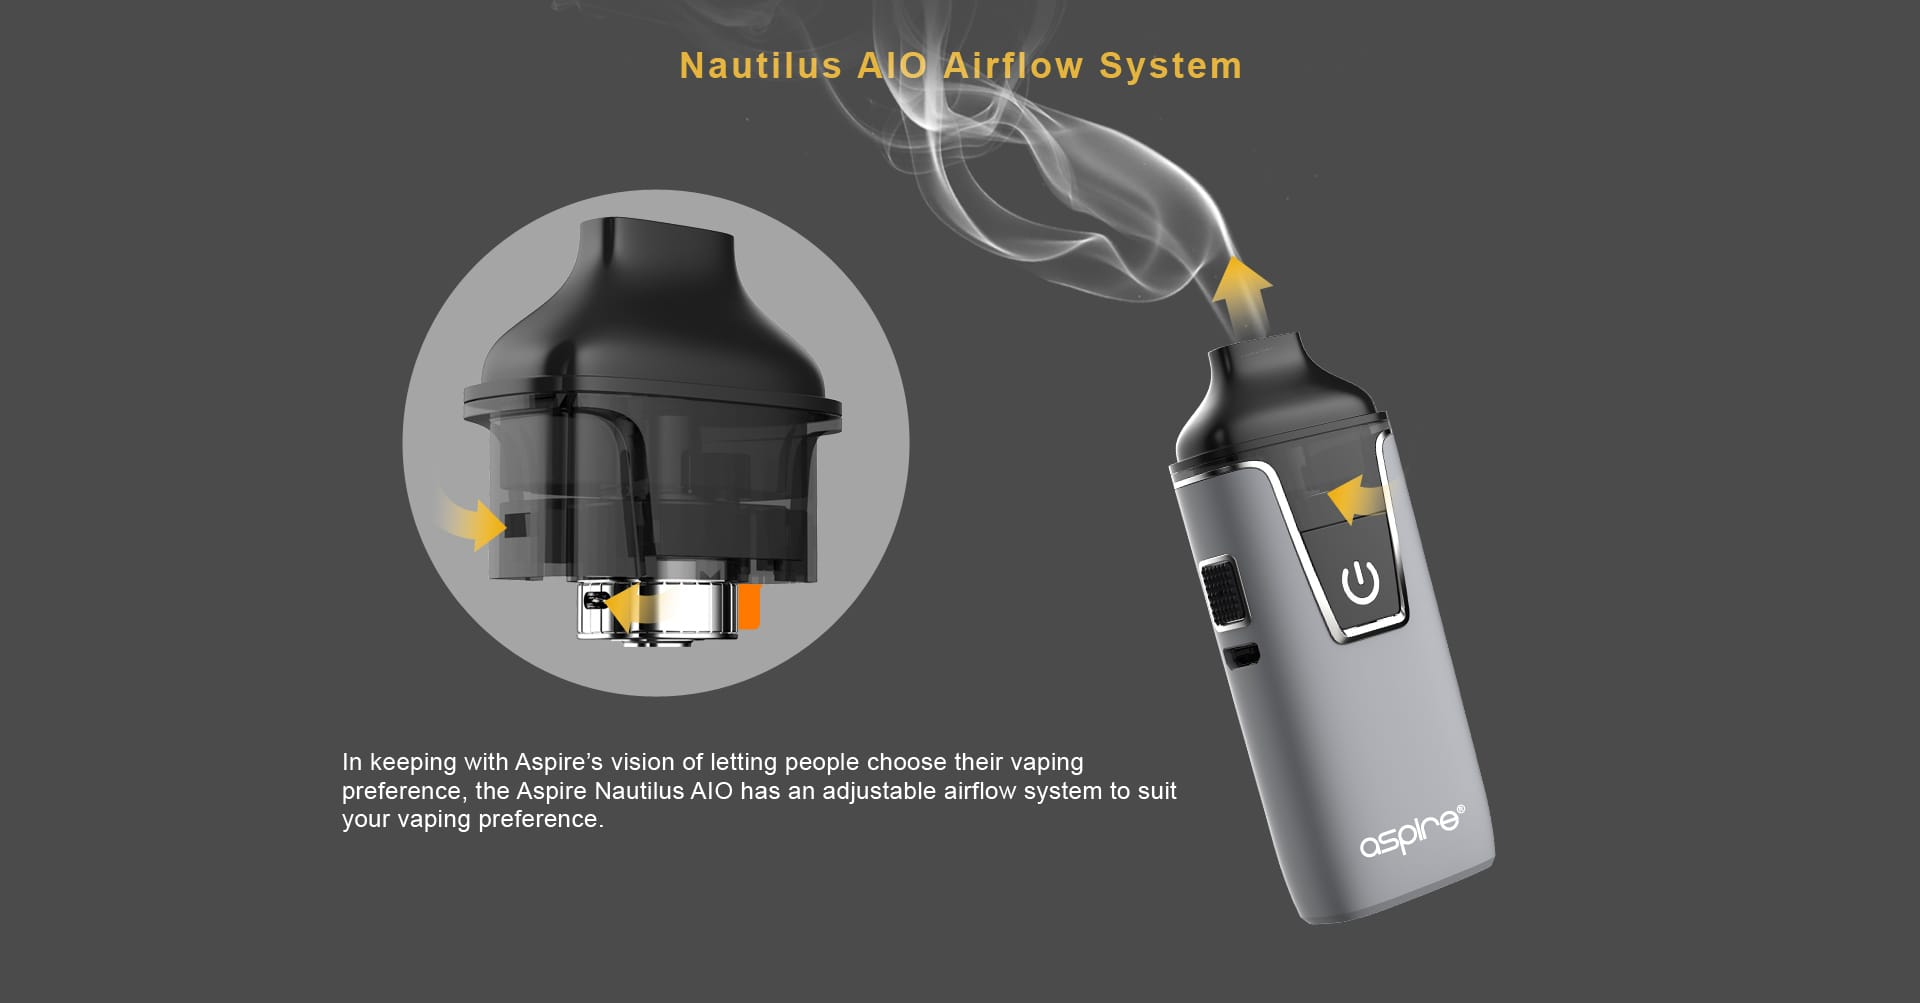 Aspire Nautilus Adjustable Airflow System. Text: In keeping with Aspire's vision of letting people choose their vaping preference, the Aspire Nautilus AIO has an adjustable airflow system to suit your vaping preference.